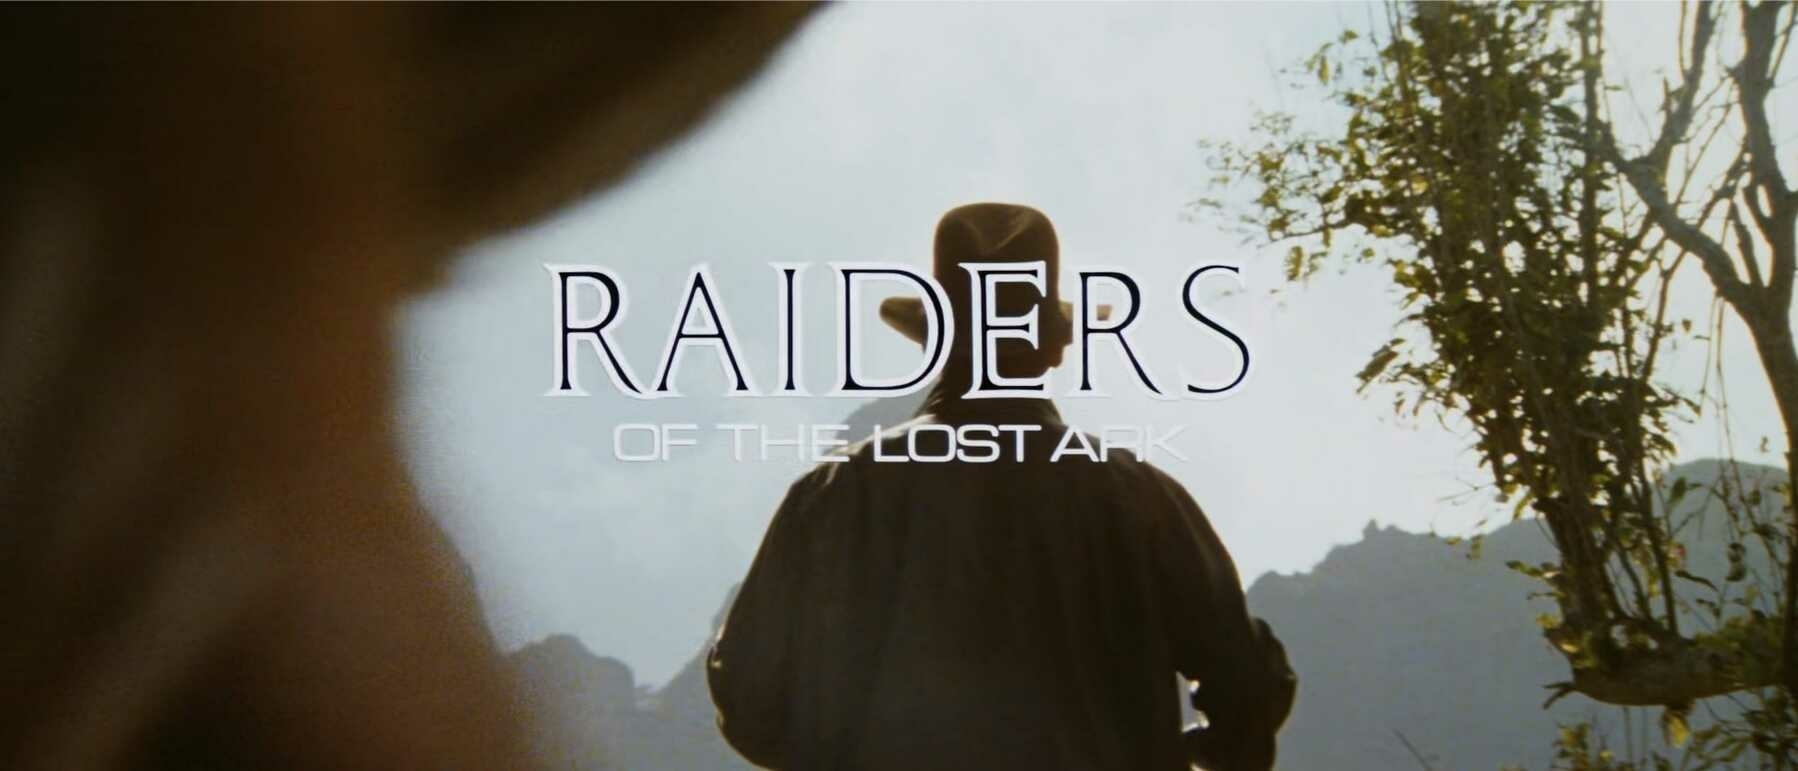 The title card for Raiders of the Lost Ark.